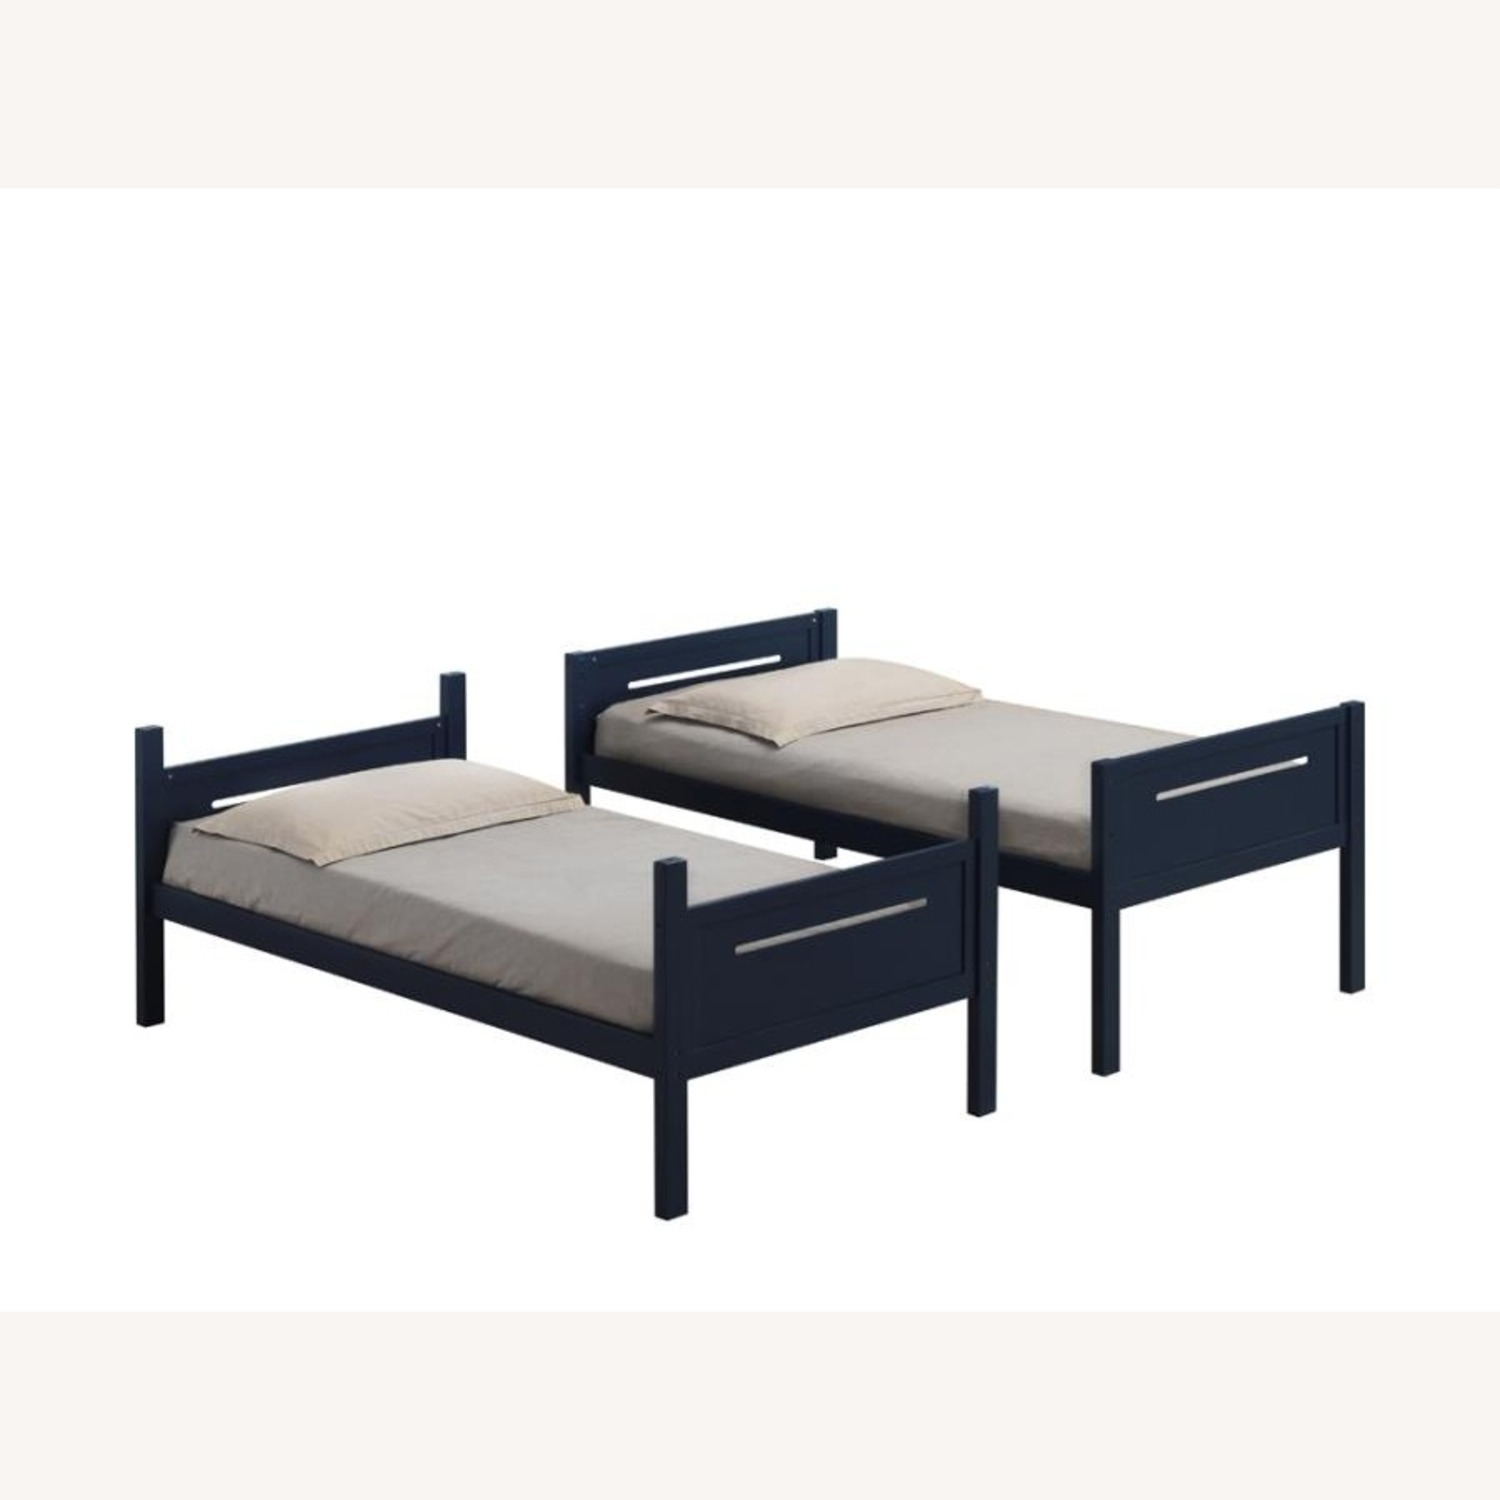 Bunk Bed In Blue Solid Rubberwood Finish - image-3